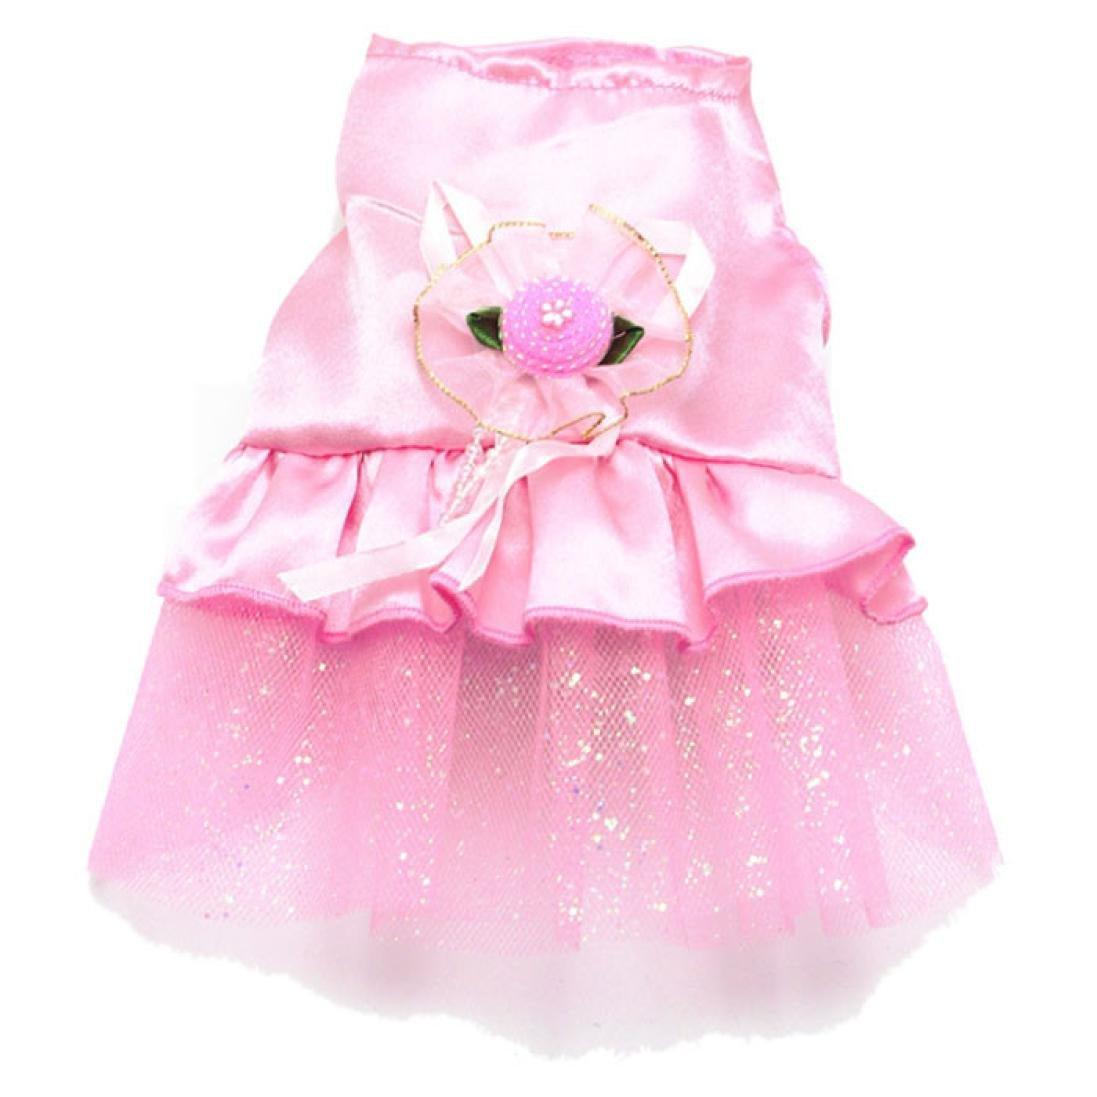 Howstar Pet Dress, Fashion Puppy Clothes Dog Skirt Bow Tutu Doggie Lace Skirt (XXS, Pink)